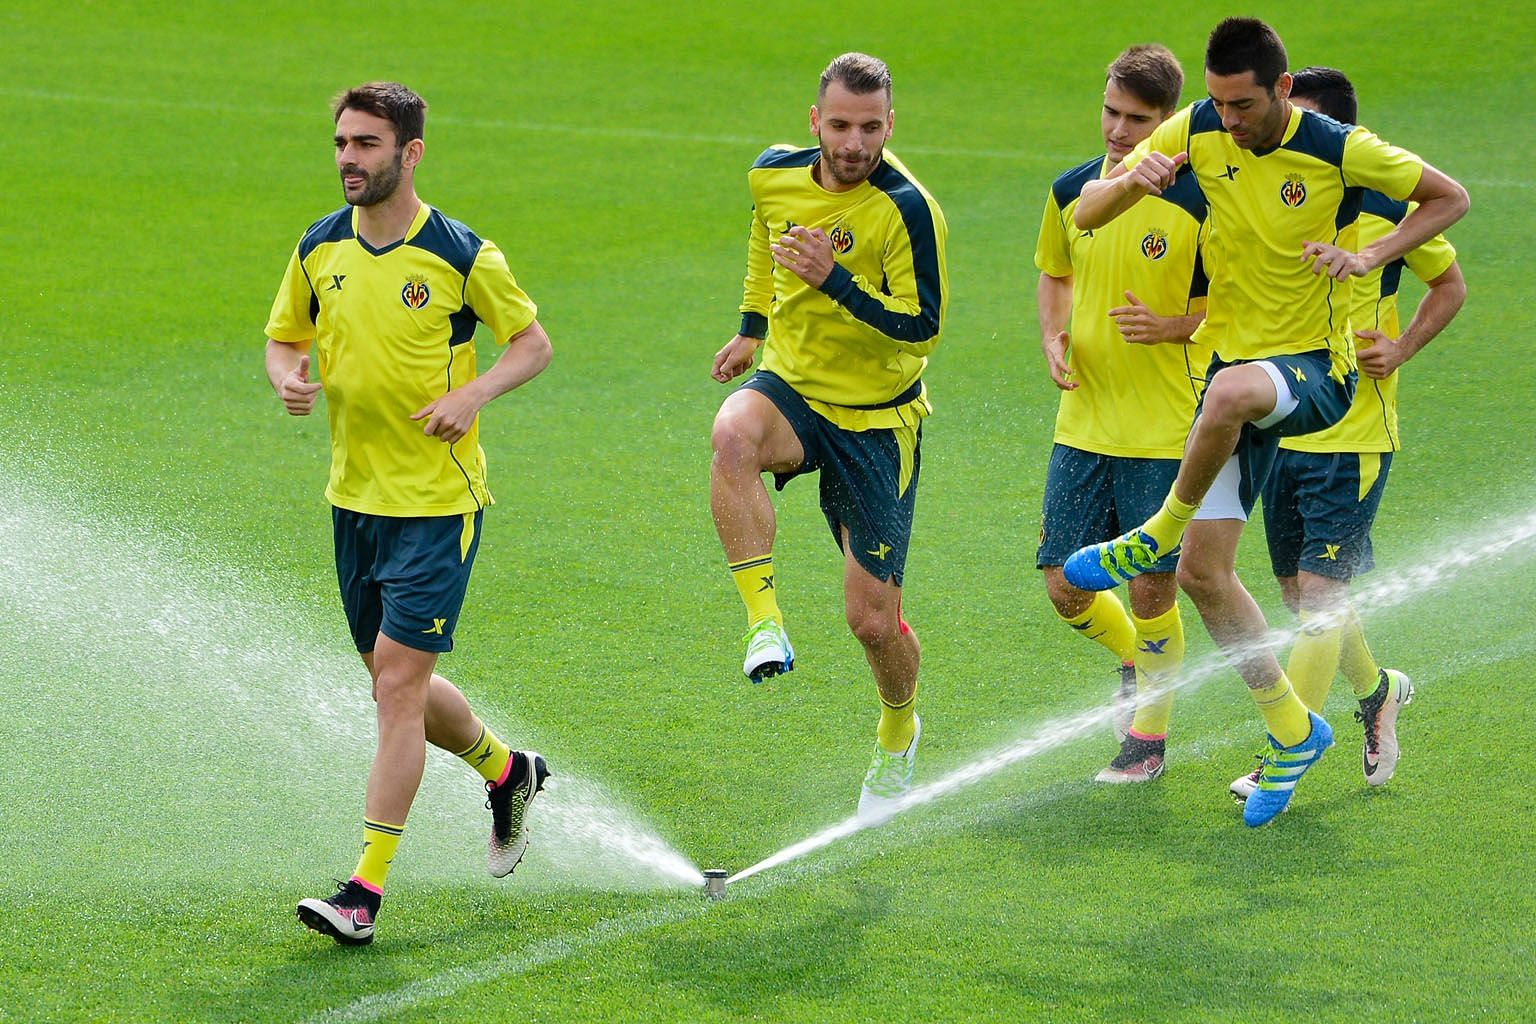 Villarreal players training ahead of their clash against Liverpool with a sprinkling of hope of reaching a major continental final. They fell just short in 2004, 2006 and 2011.